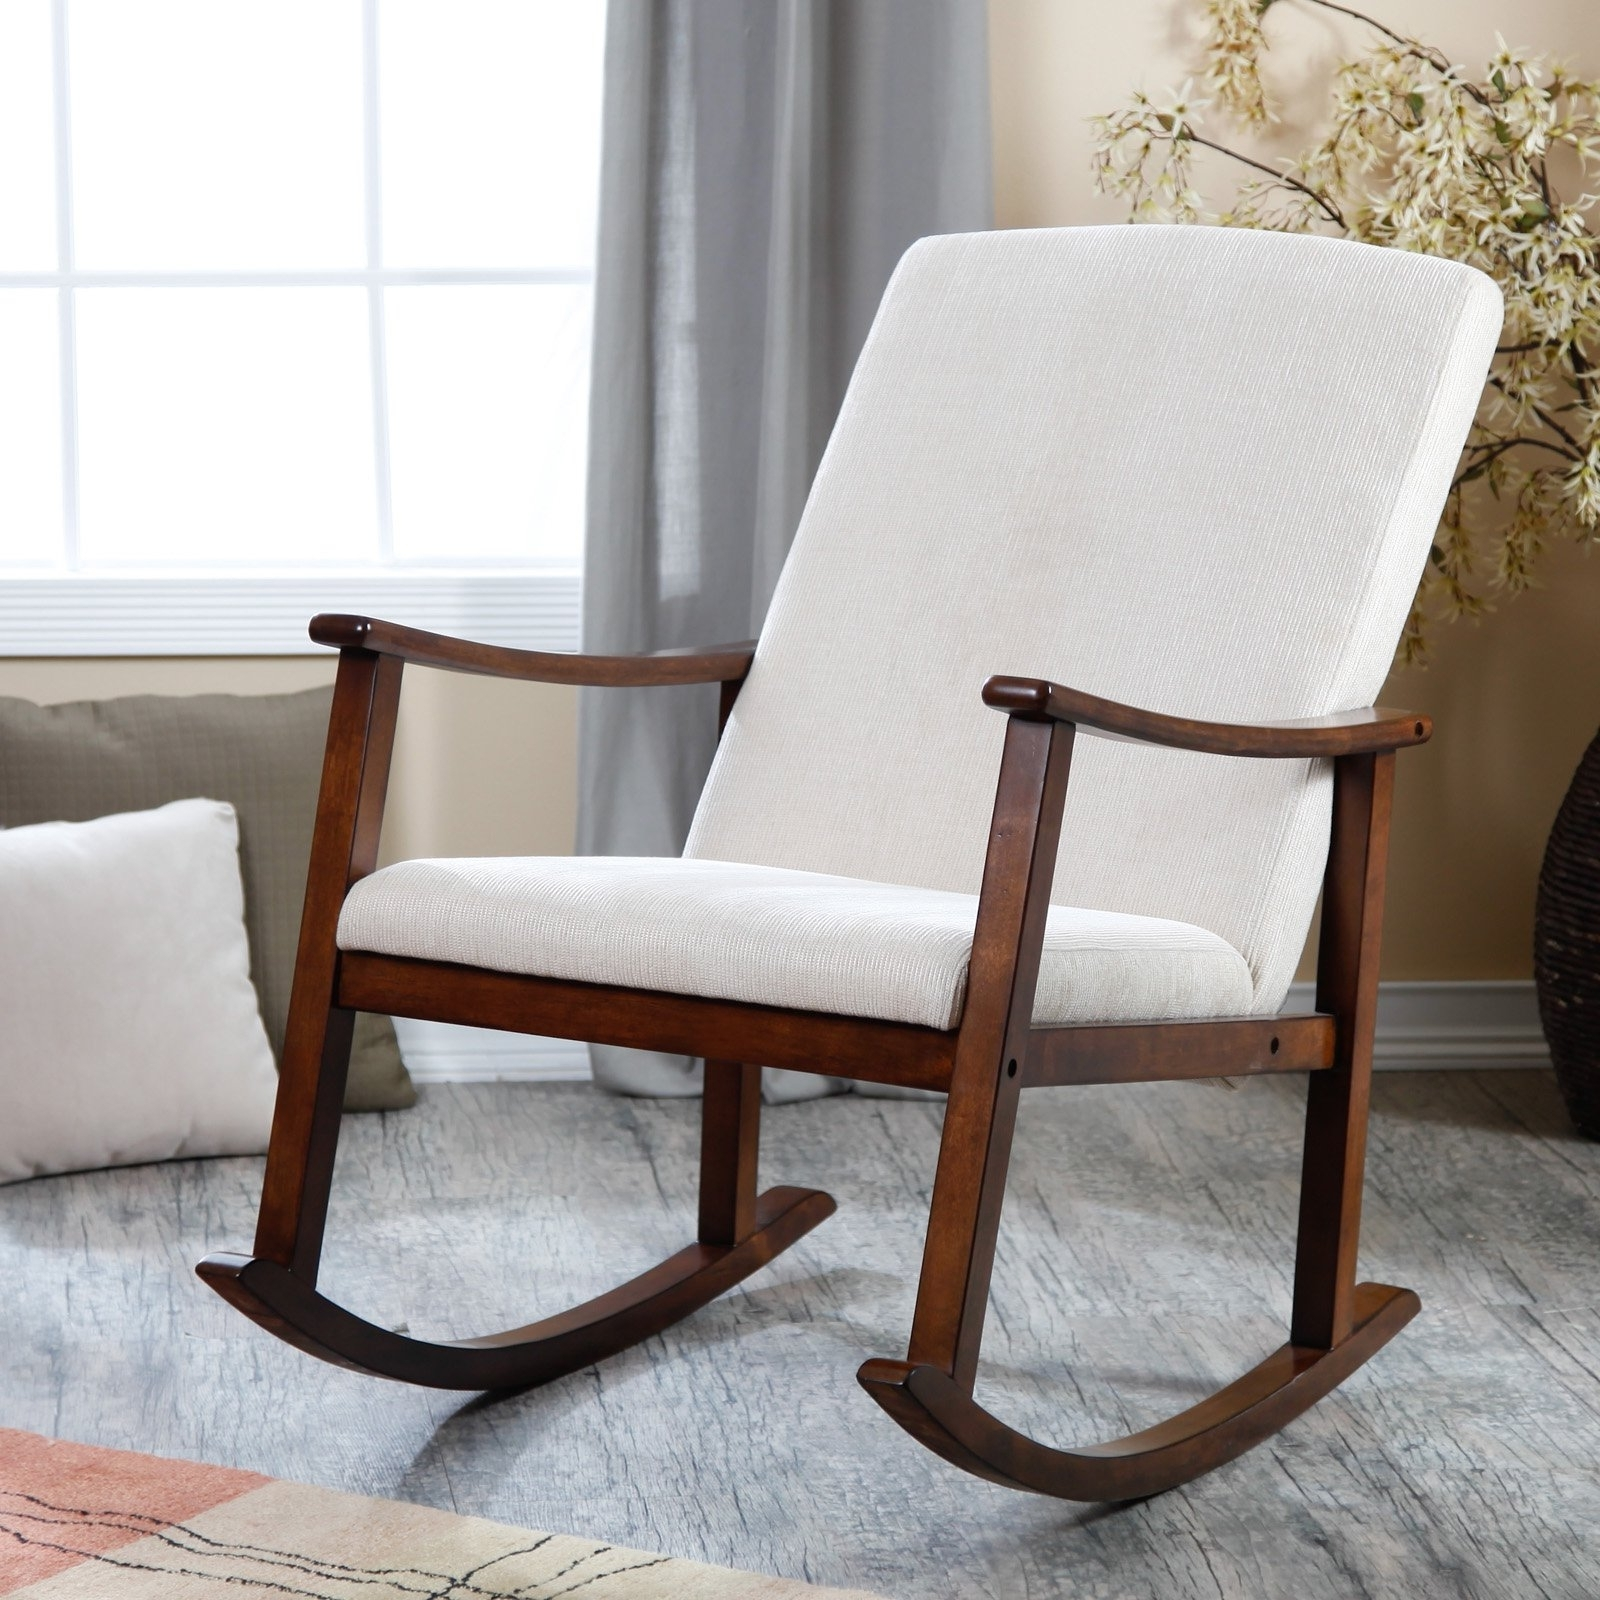 Rocking Chairs At Target In Most Recent Chairs: Remarkable Beautiful Target Glider Chair Suitable For Your (View 5 of 15)